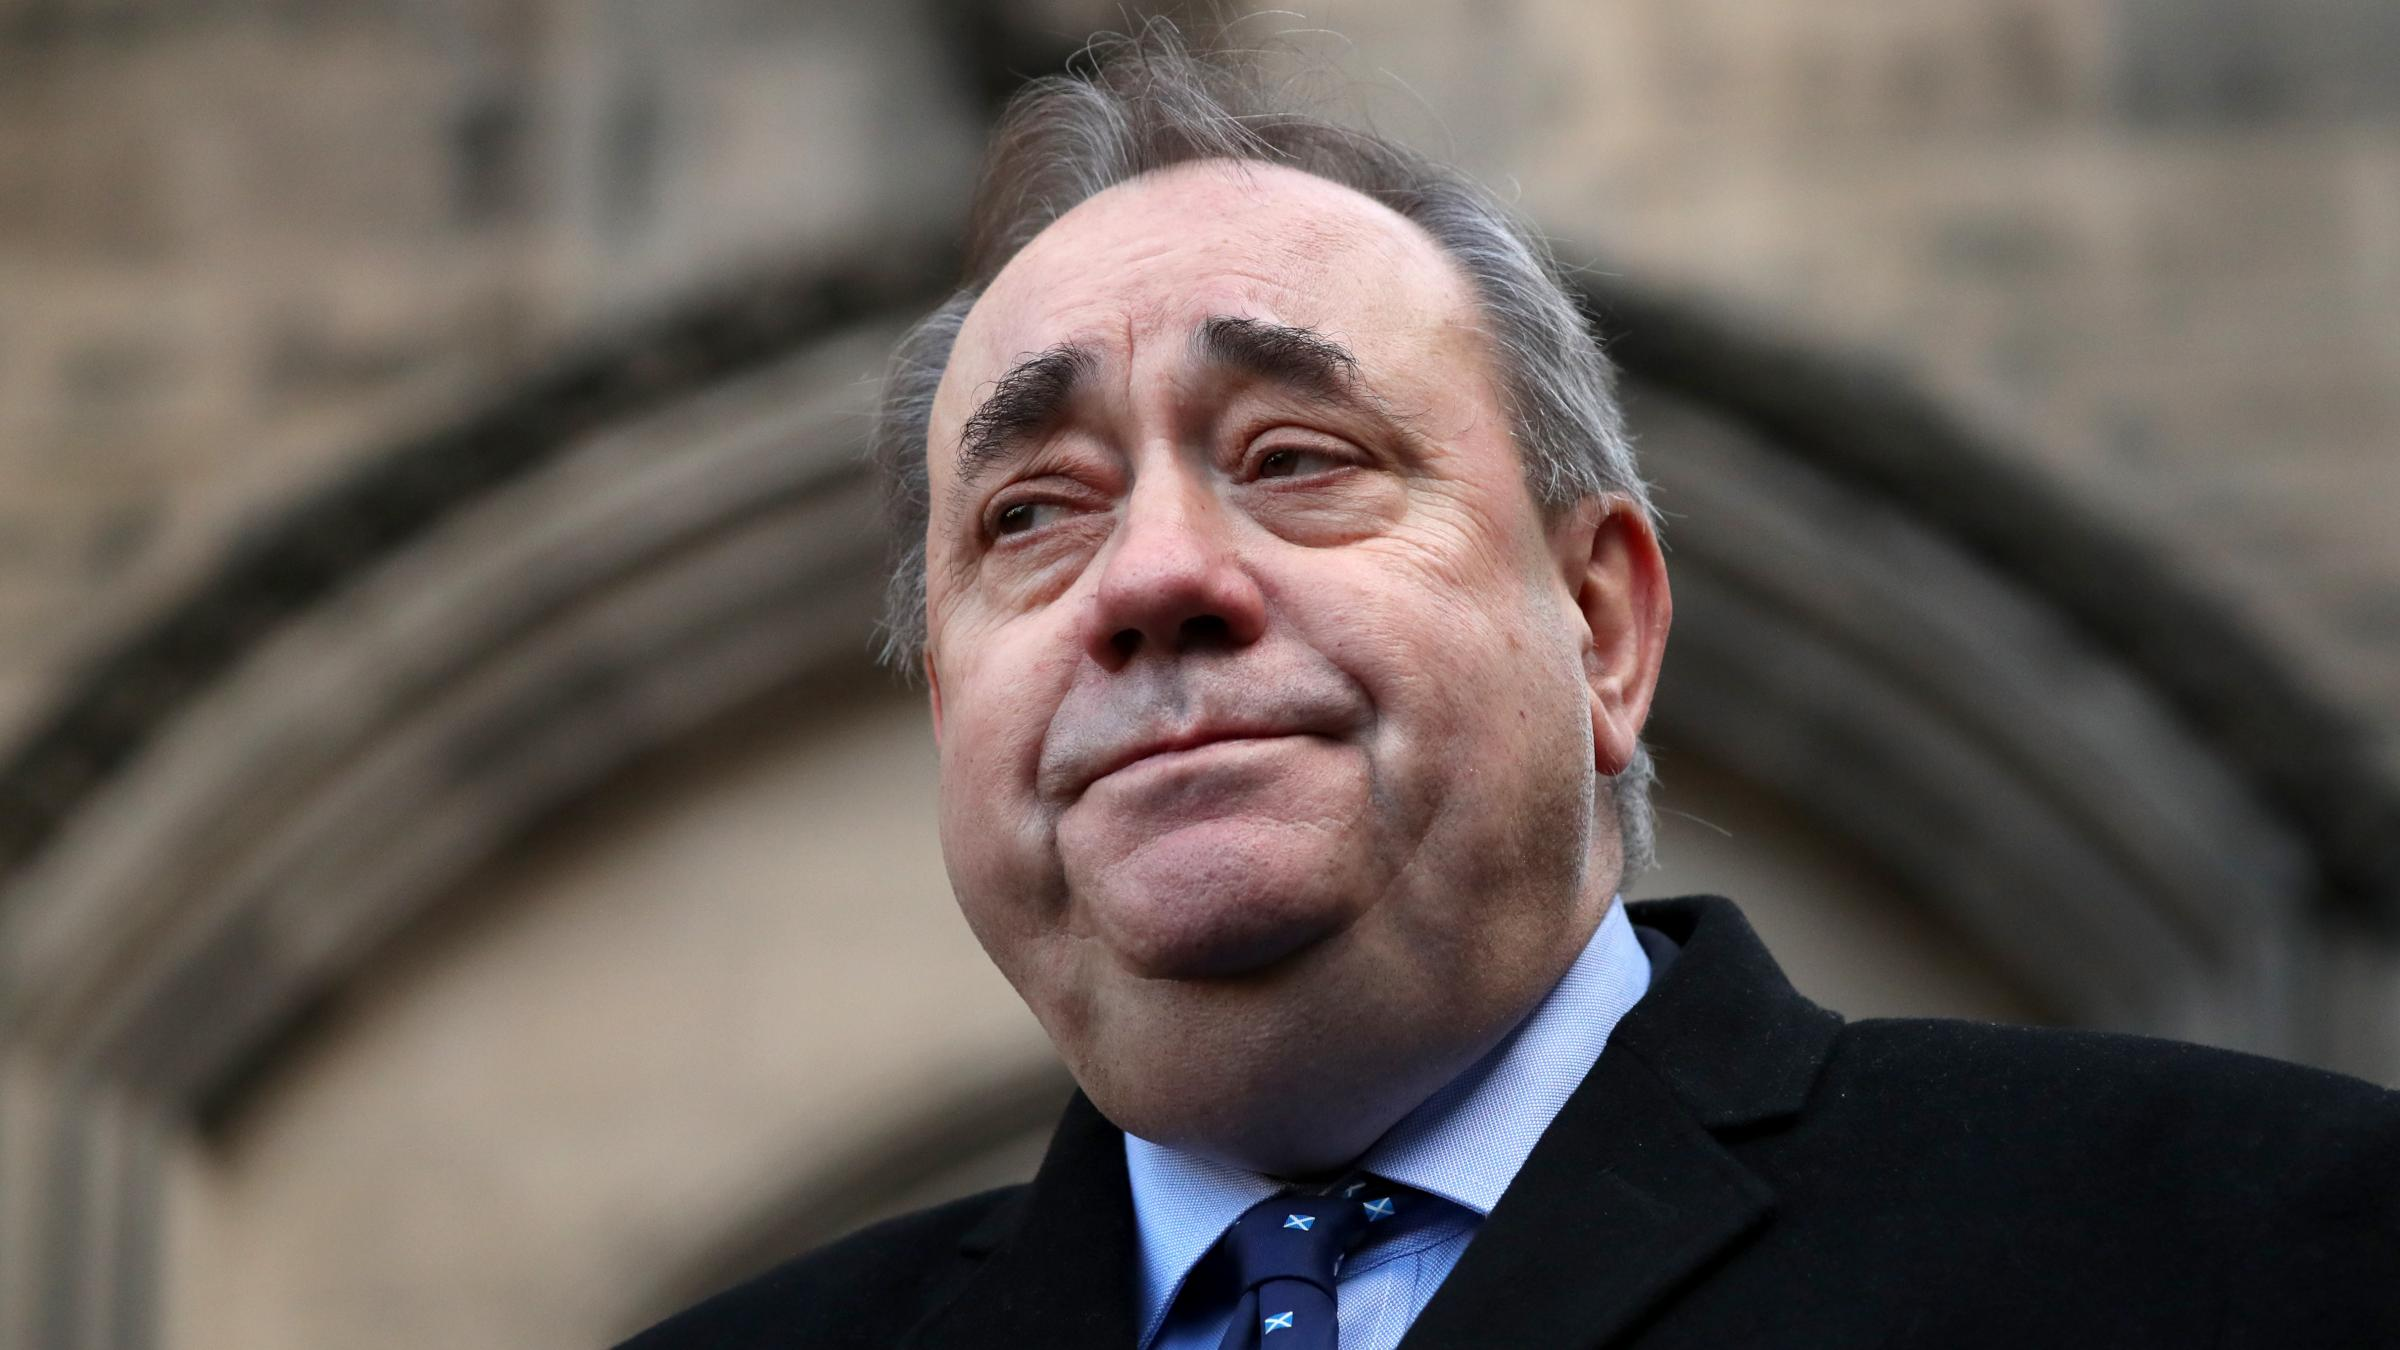 Former Scotland First Minister Alex Salmond arrested and charged